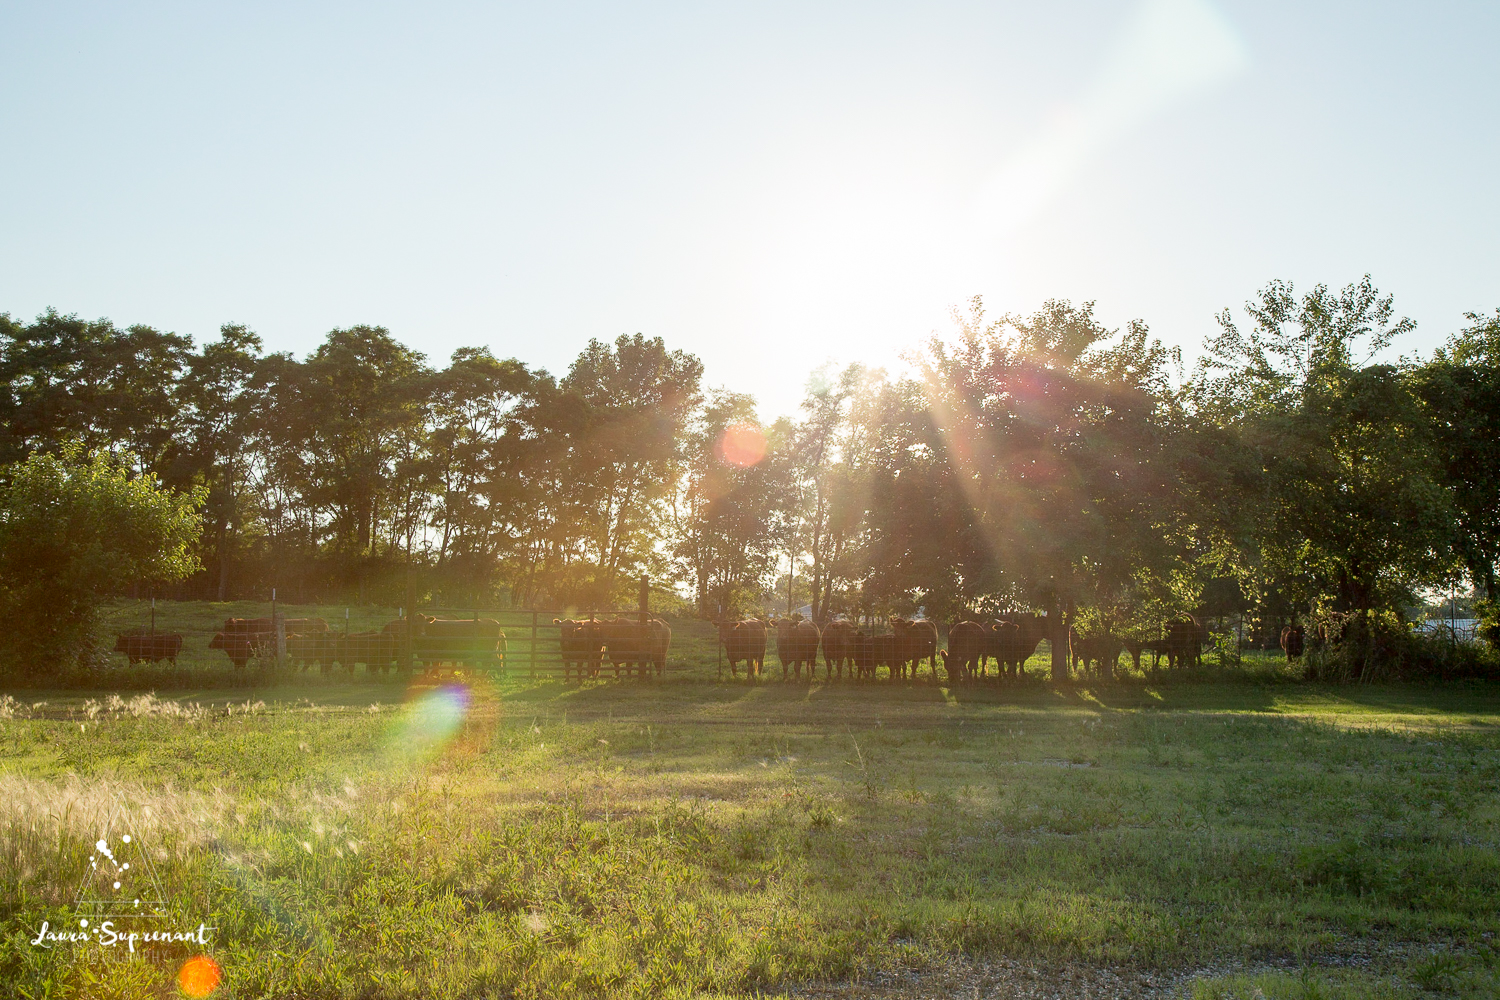 Hancock County Country Illinois Nature Outdoor Sunset Cow Cattle Cows Cat Sunflare Photography-5787.jpg